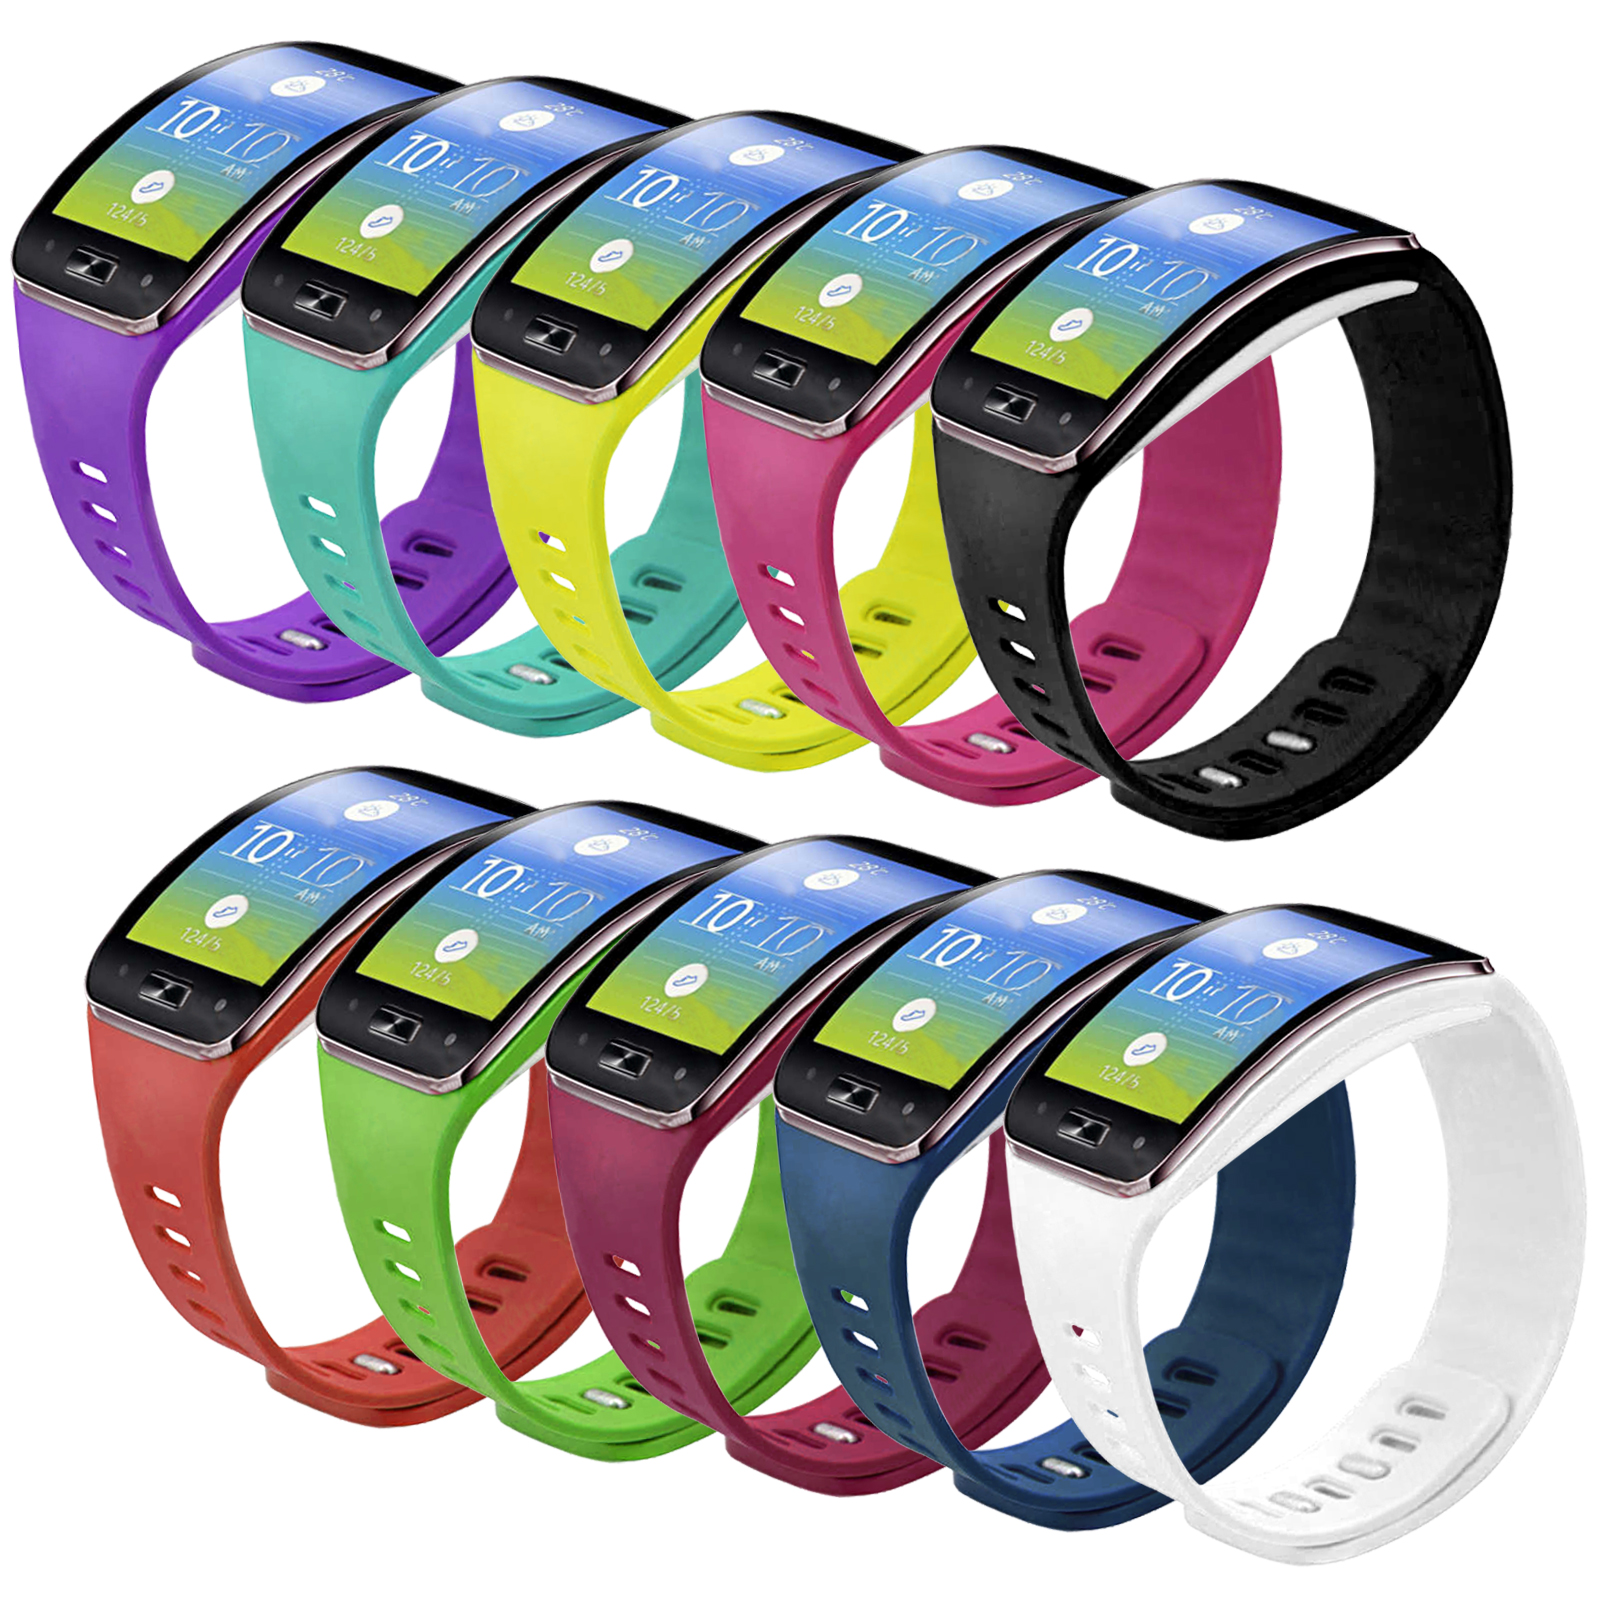 EEEKit 10 Pcs Soft Tpu Replacement Watch Band Wrist Strap for Samsung Gear S Sm-R750